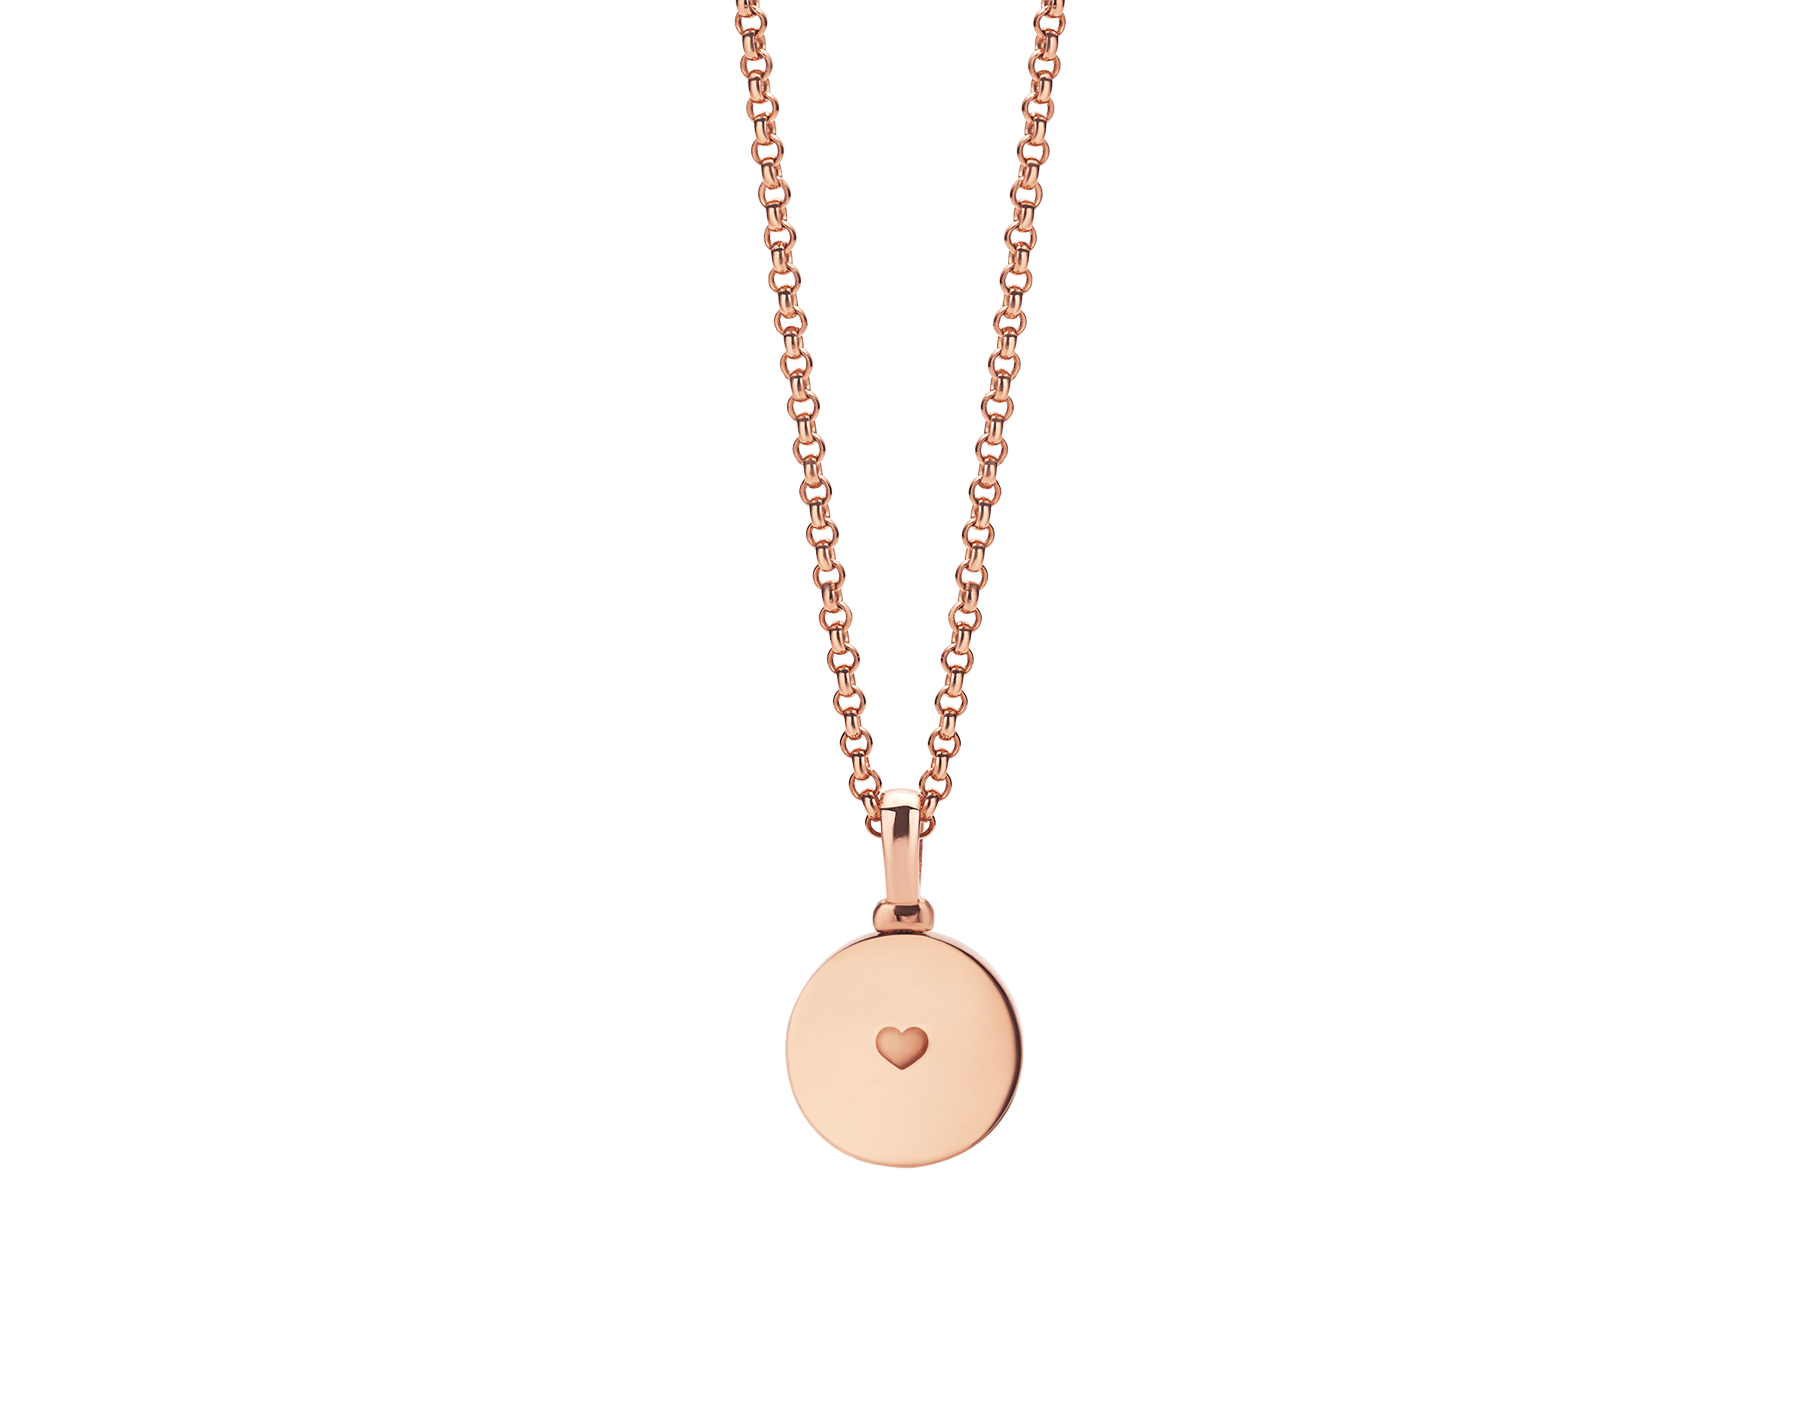 BVLGARI BVLGARI 18 kt rose gold pendant necklace set with mother-of-pearl centre, customisable with engraving on the back 358376 image 2